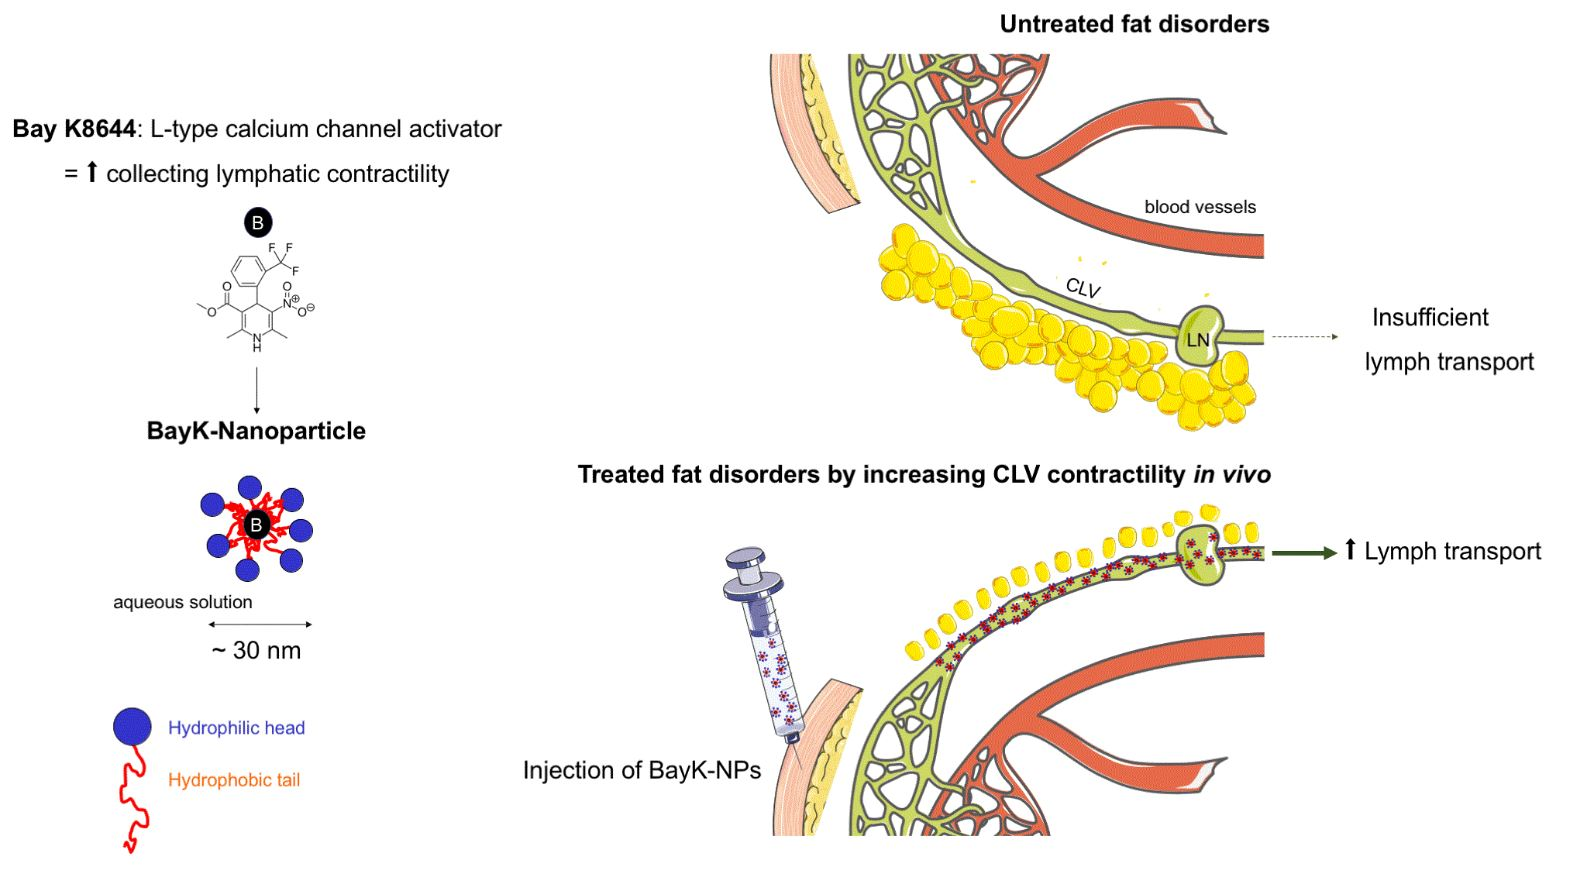 Working hypothesis: Targeting contractility of collecting lymphatic vessels  in vivo  by injecting nanoparticles loaded with L-type calcium channel activator will improve local lymph drainage and control adipose tissue deposition. BayK, L-type calcium channel activator; CLV, collecting lymphatic vessels; LN, lymph node; NP, nanoparticle.